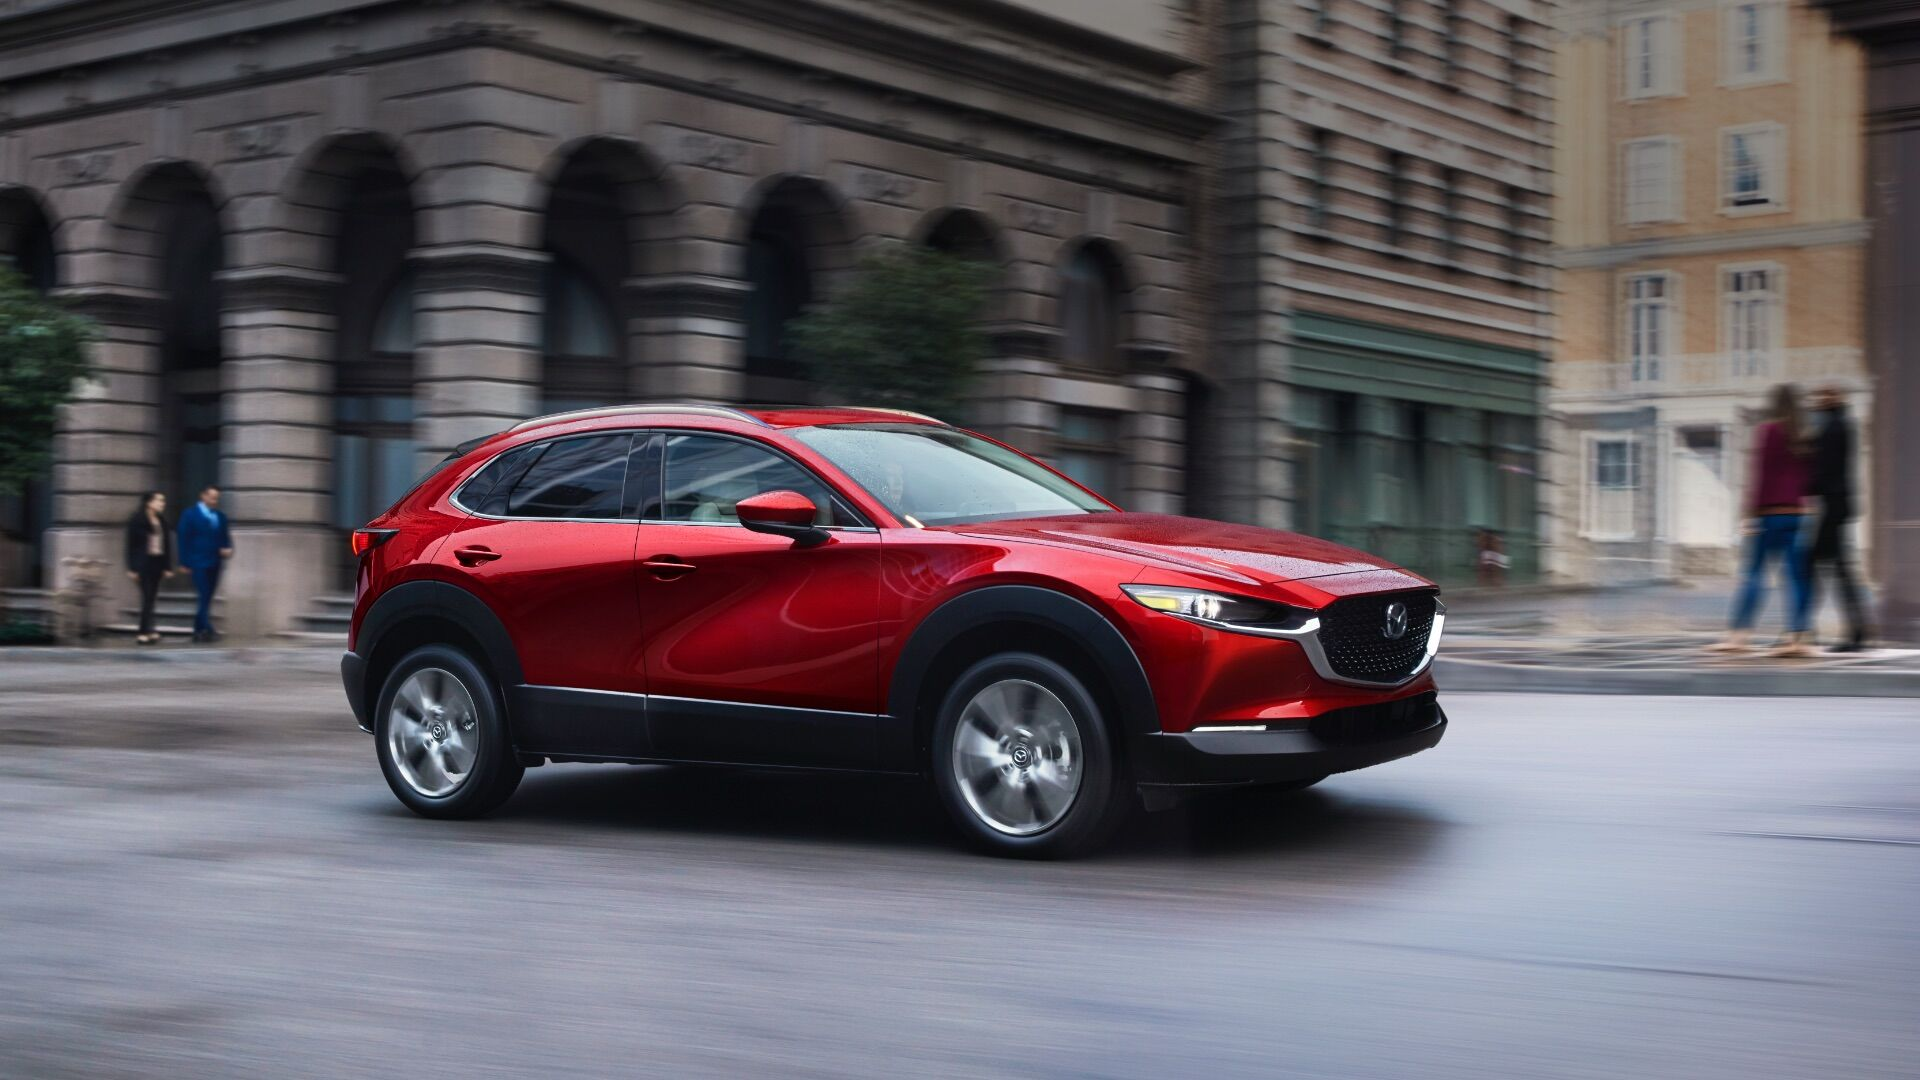 A 2020 mazdacx30 driving on a city street